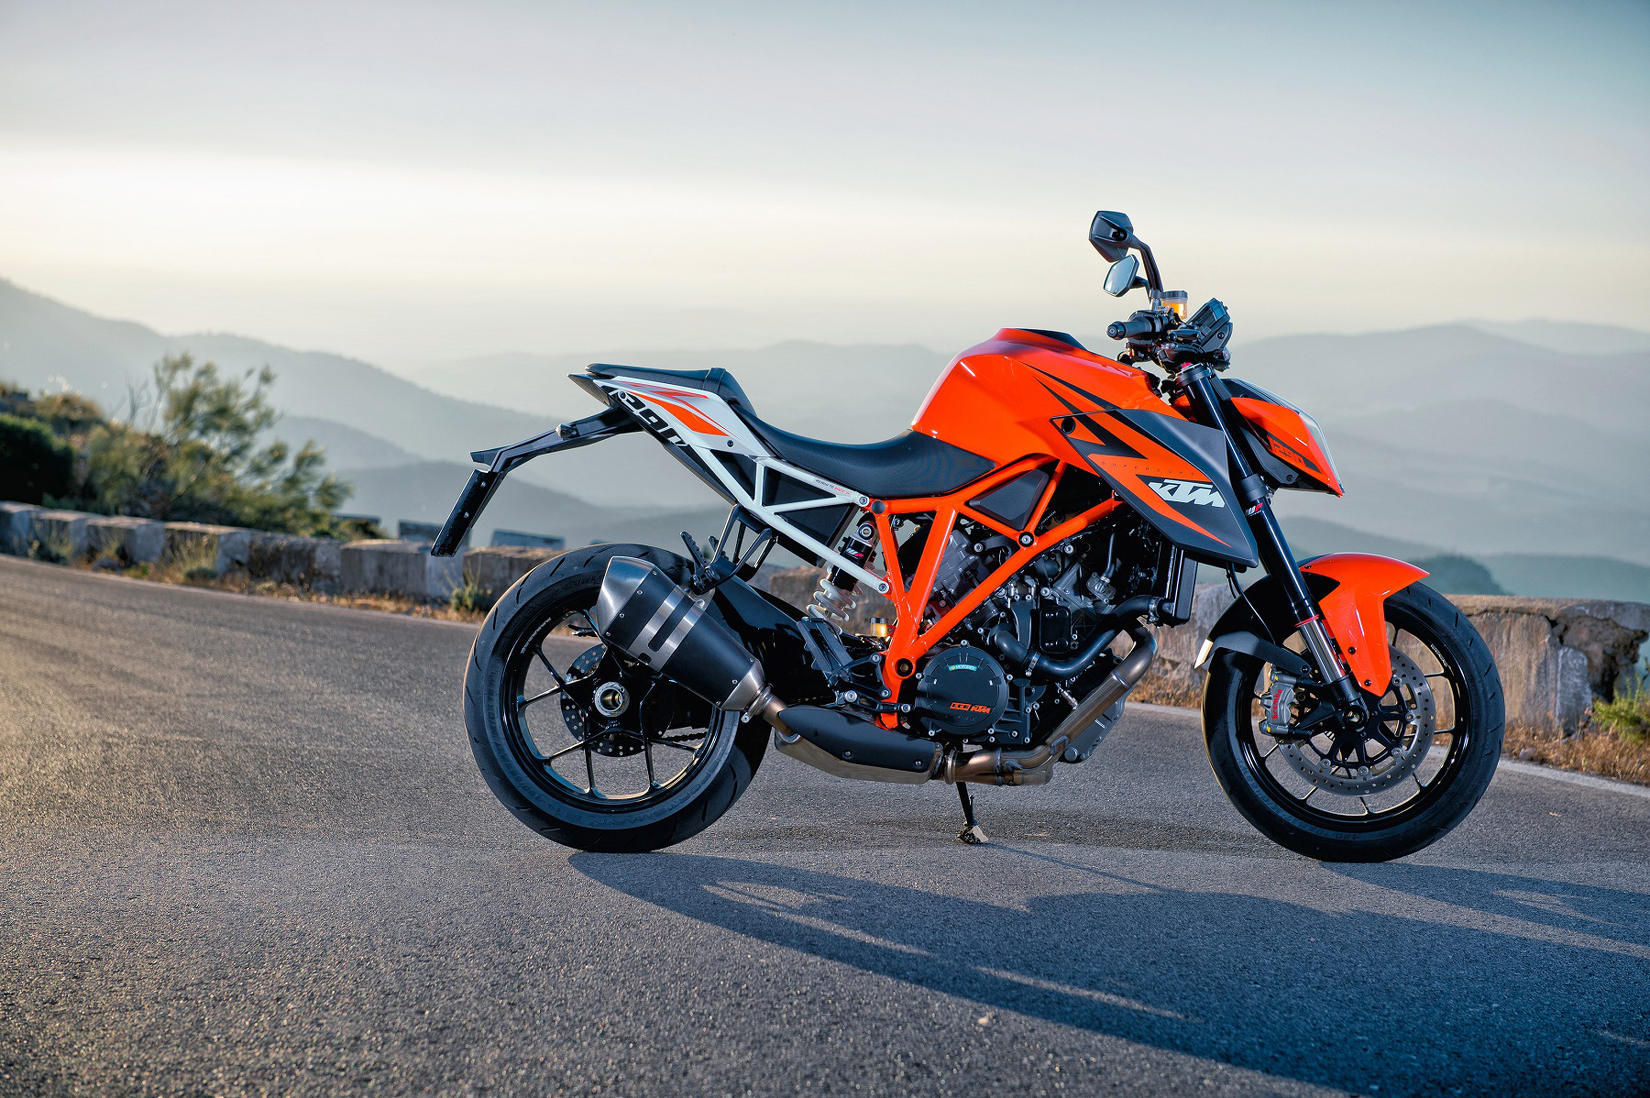 2014 ktm 1290 superduke r md first ride motorcycledaily. Black Bedroom Furniture Sets. Home Design Ideas